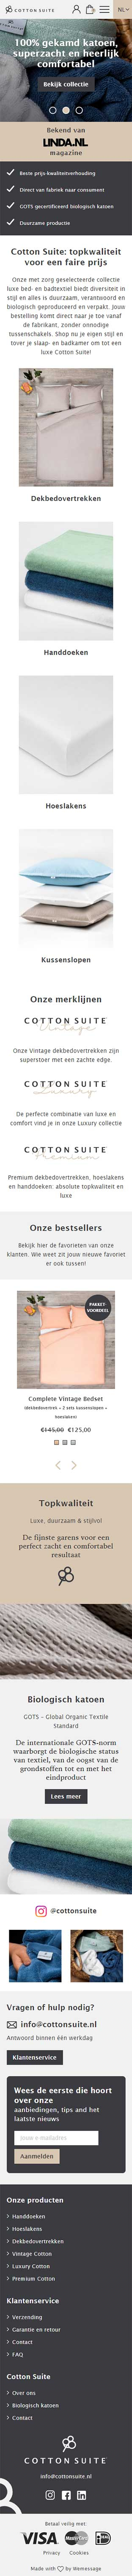 Cotton Suite website voorbeeld op mobiele apparaten